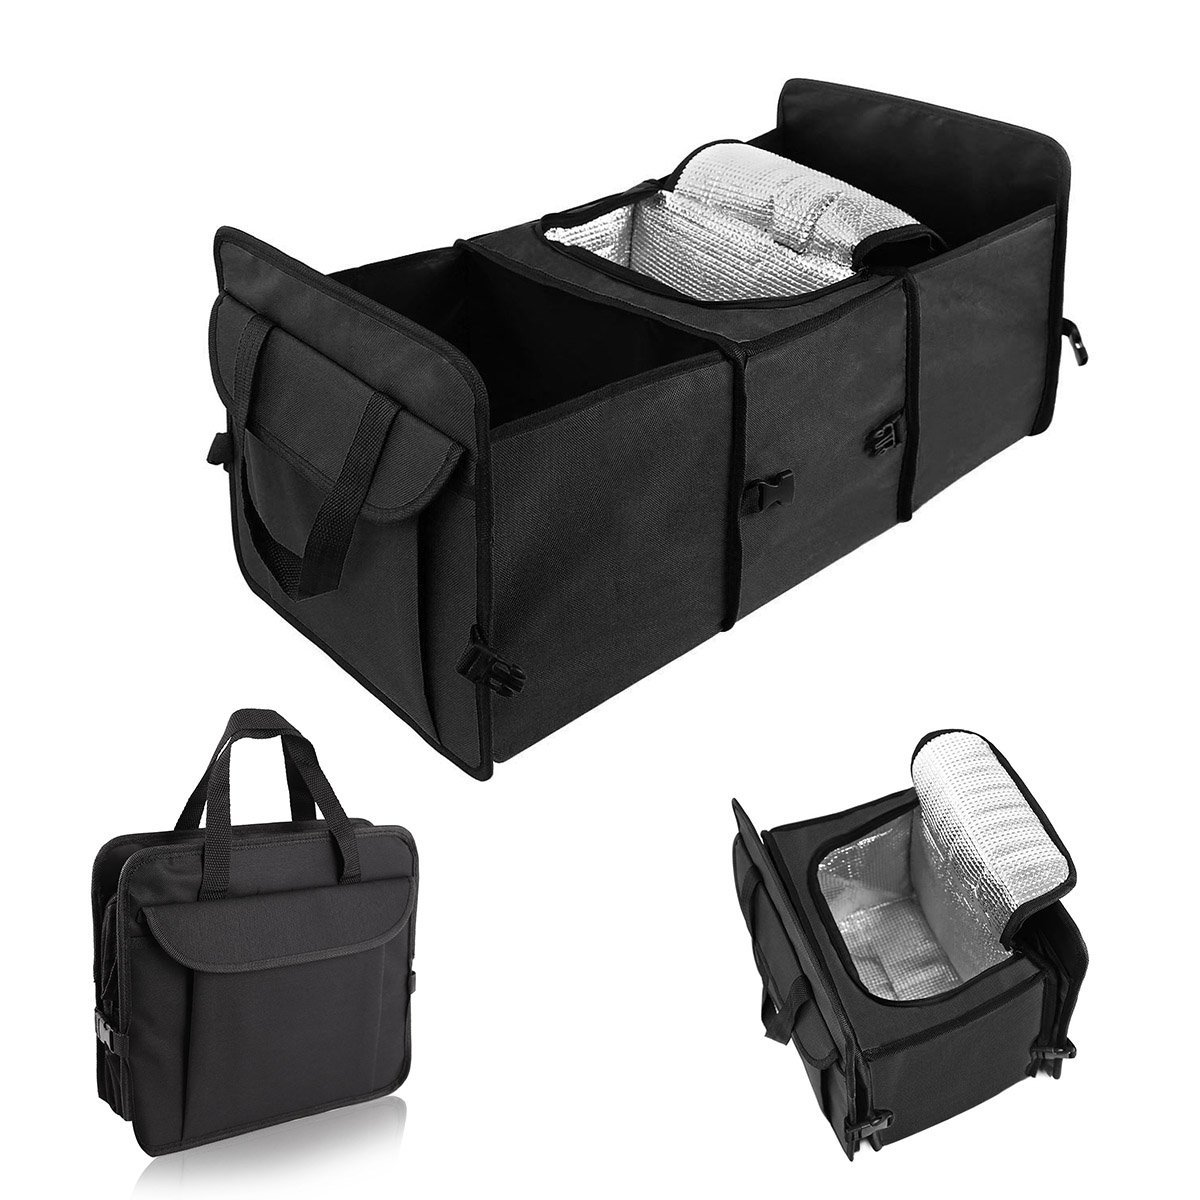 266e458b3980 Details about New Car Trunk Organizer Cooler Storage for Auto Front & Back  Seat Collapsible